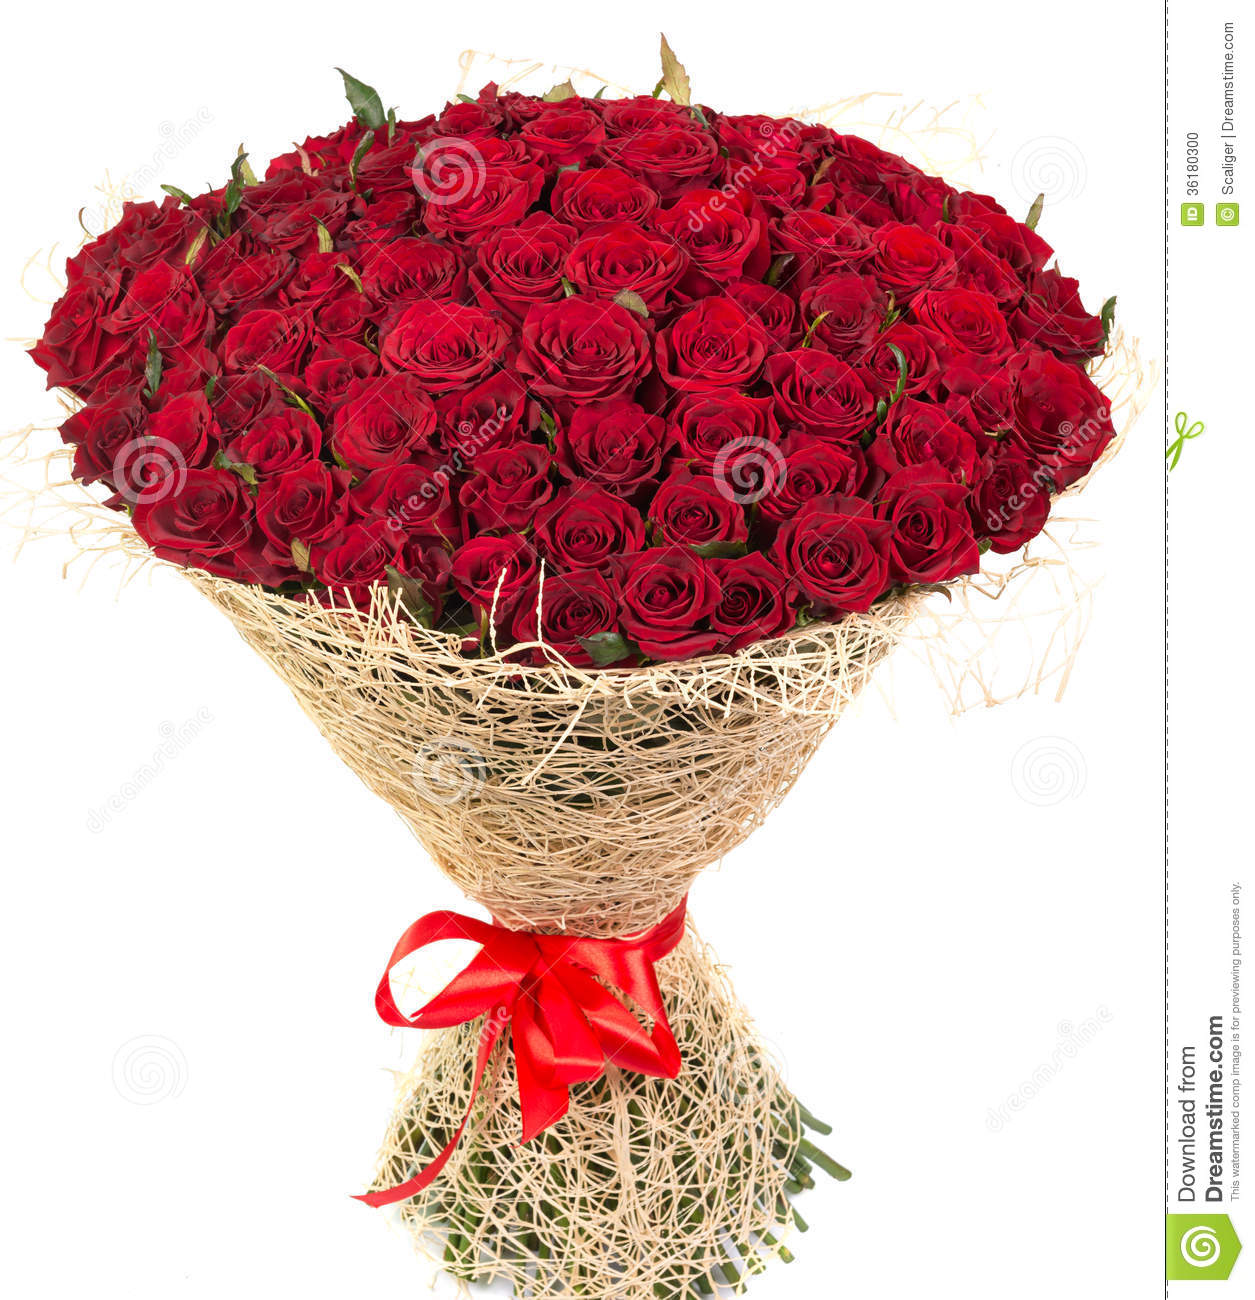 Big Bouquet Of Red Roses Stock Photo Image Of Celebrating 36180300